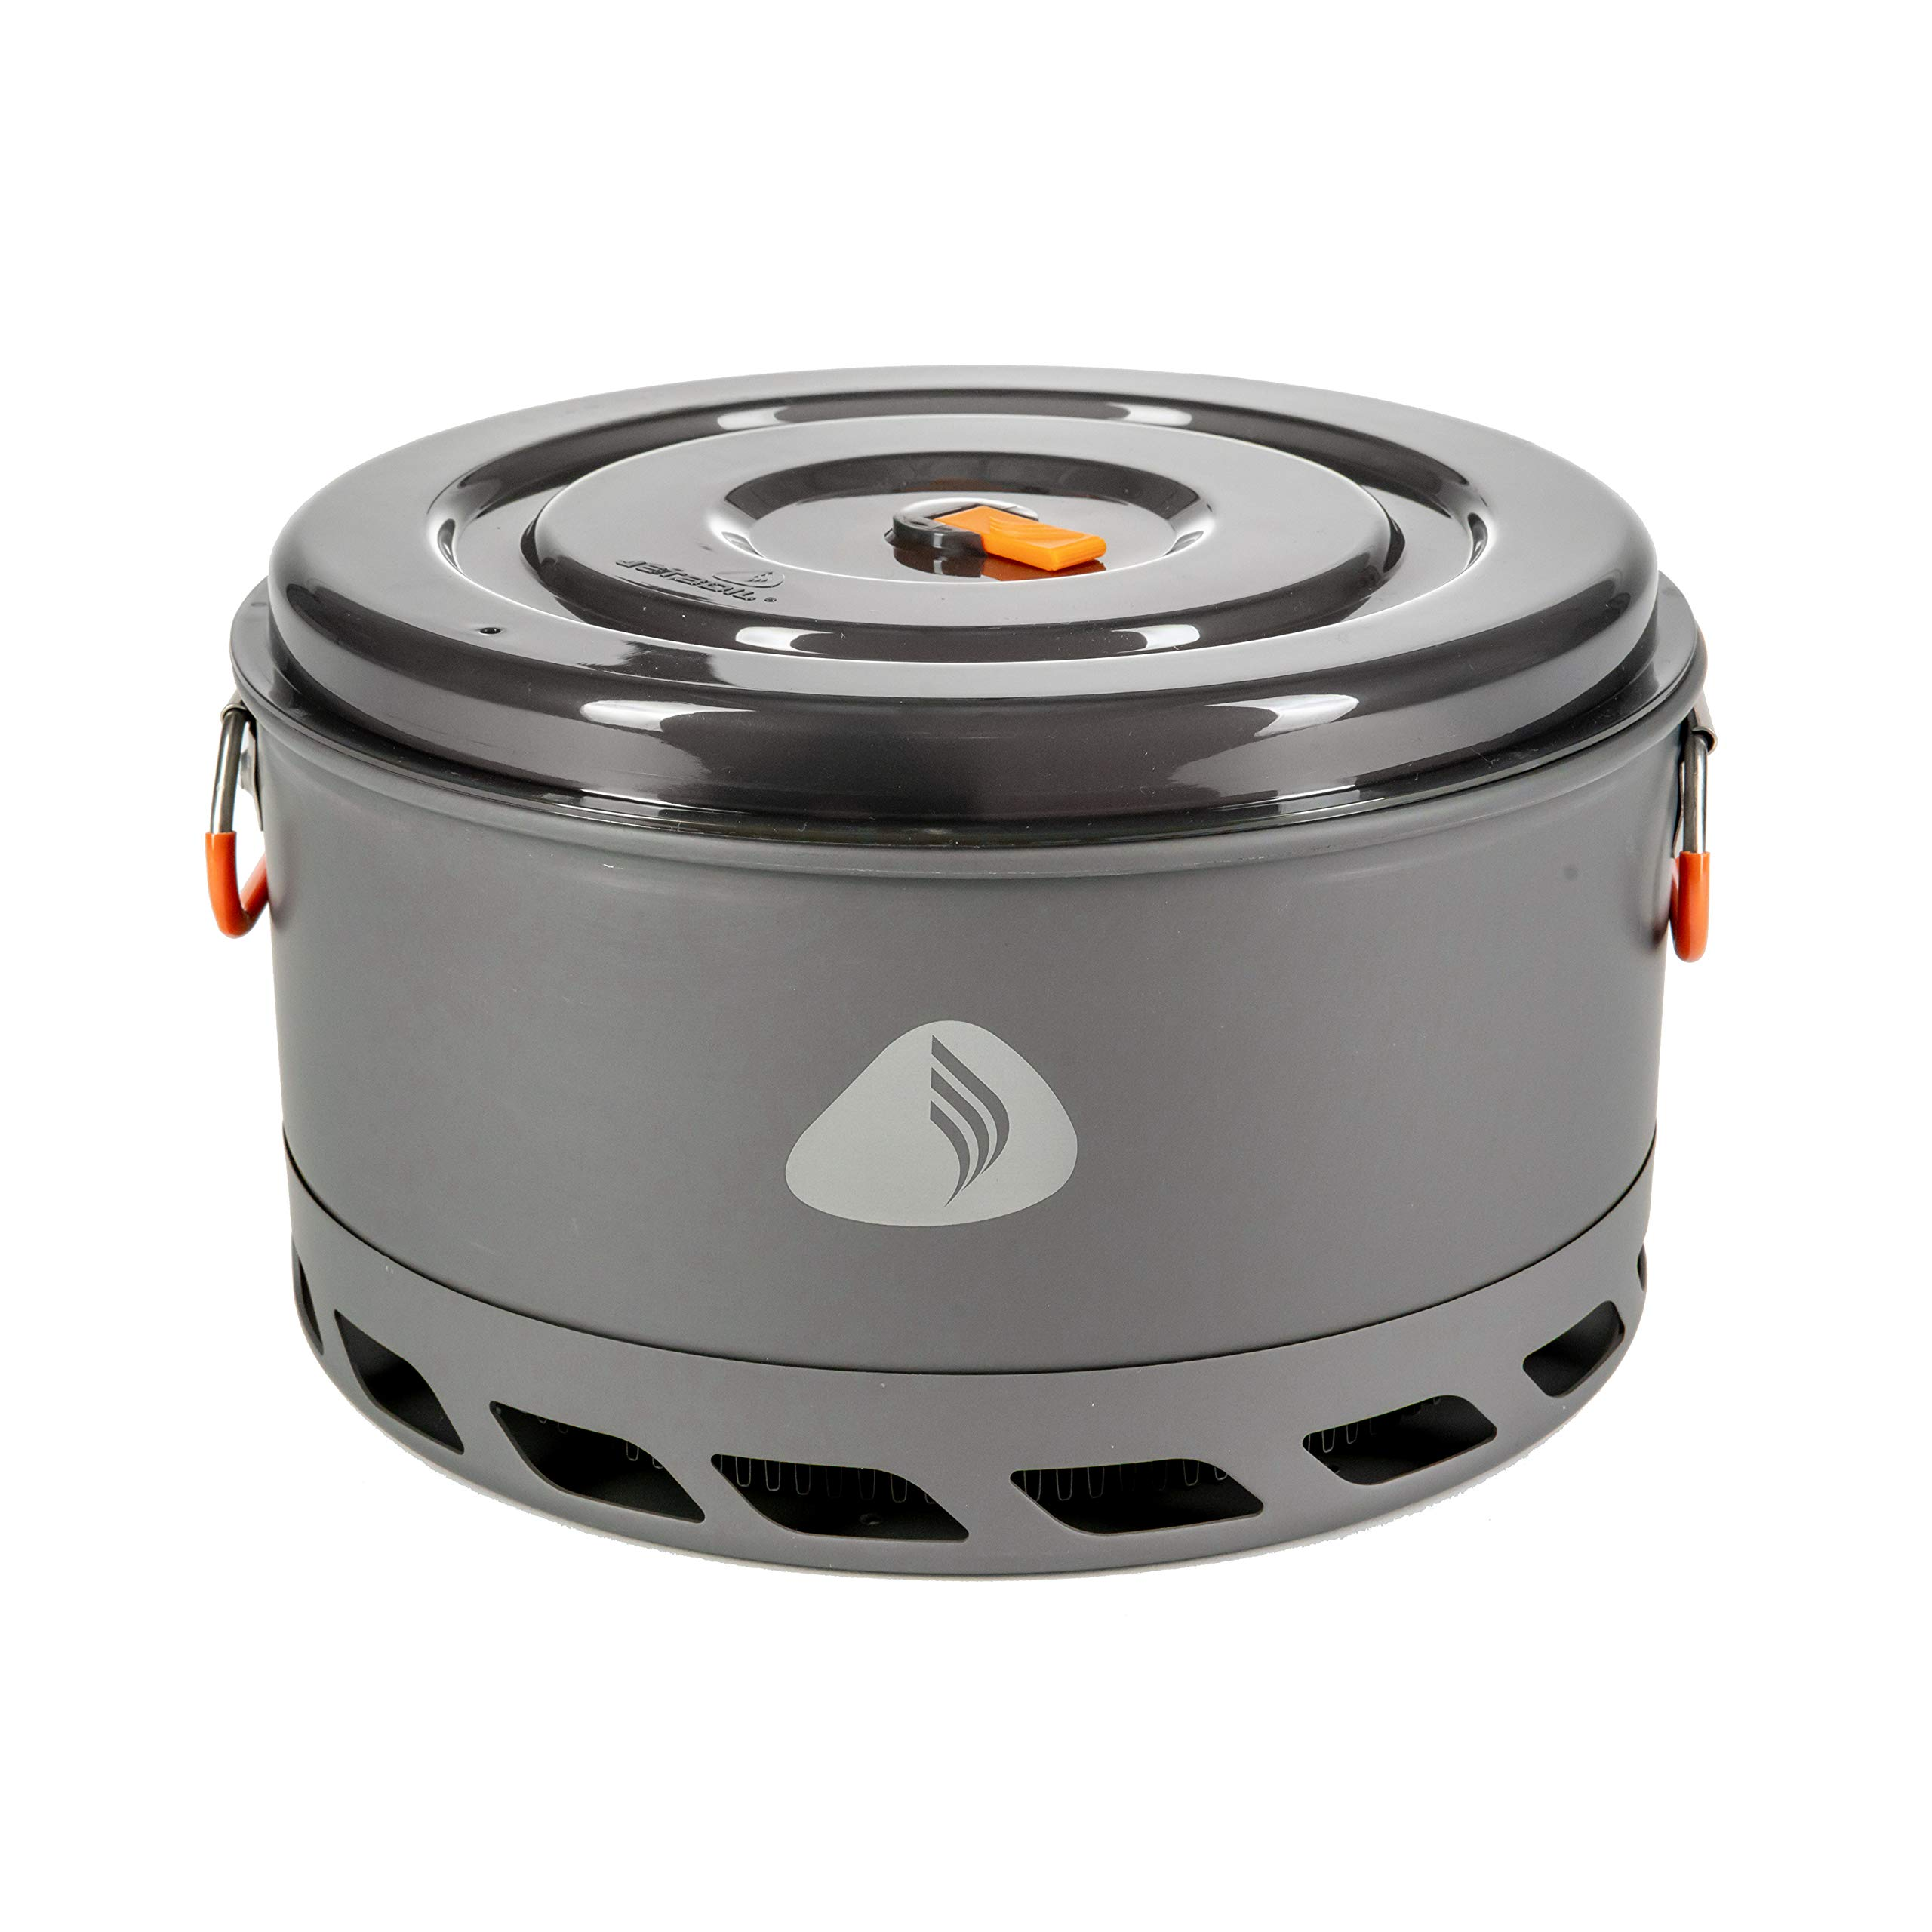 Jetboil 5-Liter FluxRing Camping Cooking Pot and Lid by Jetboil